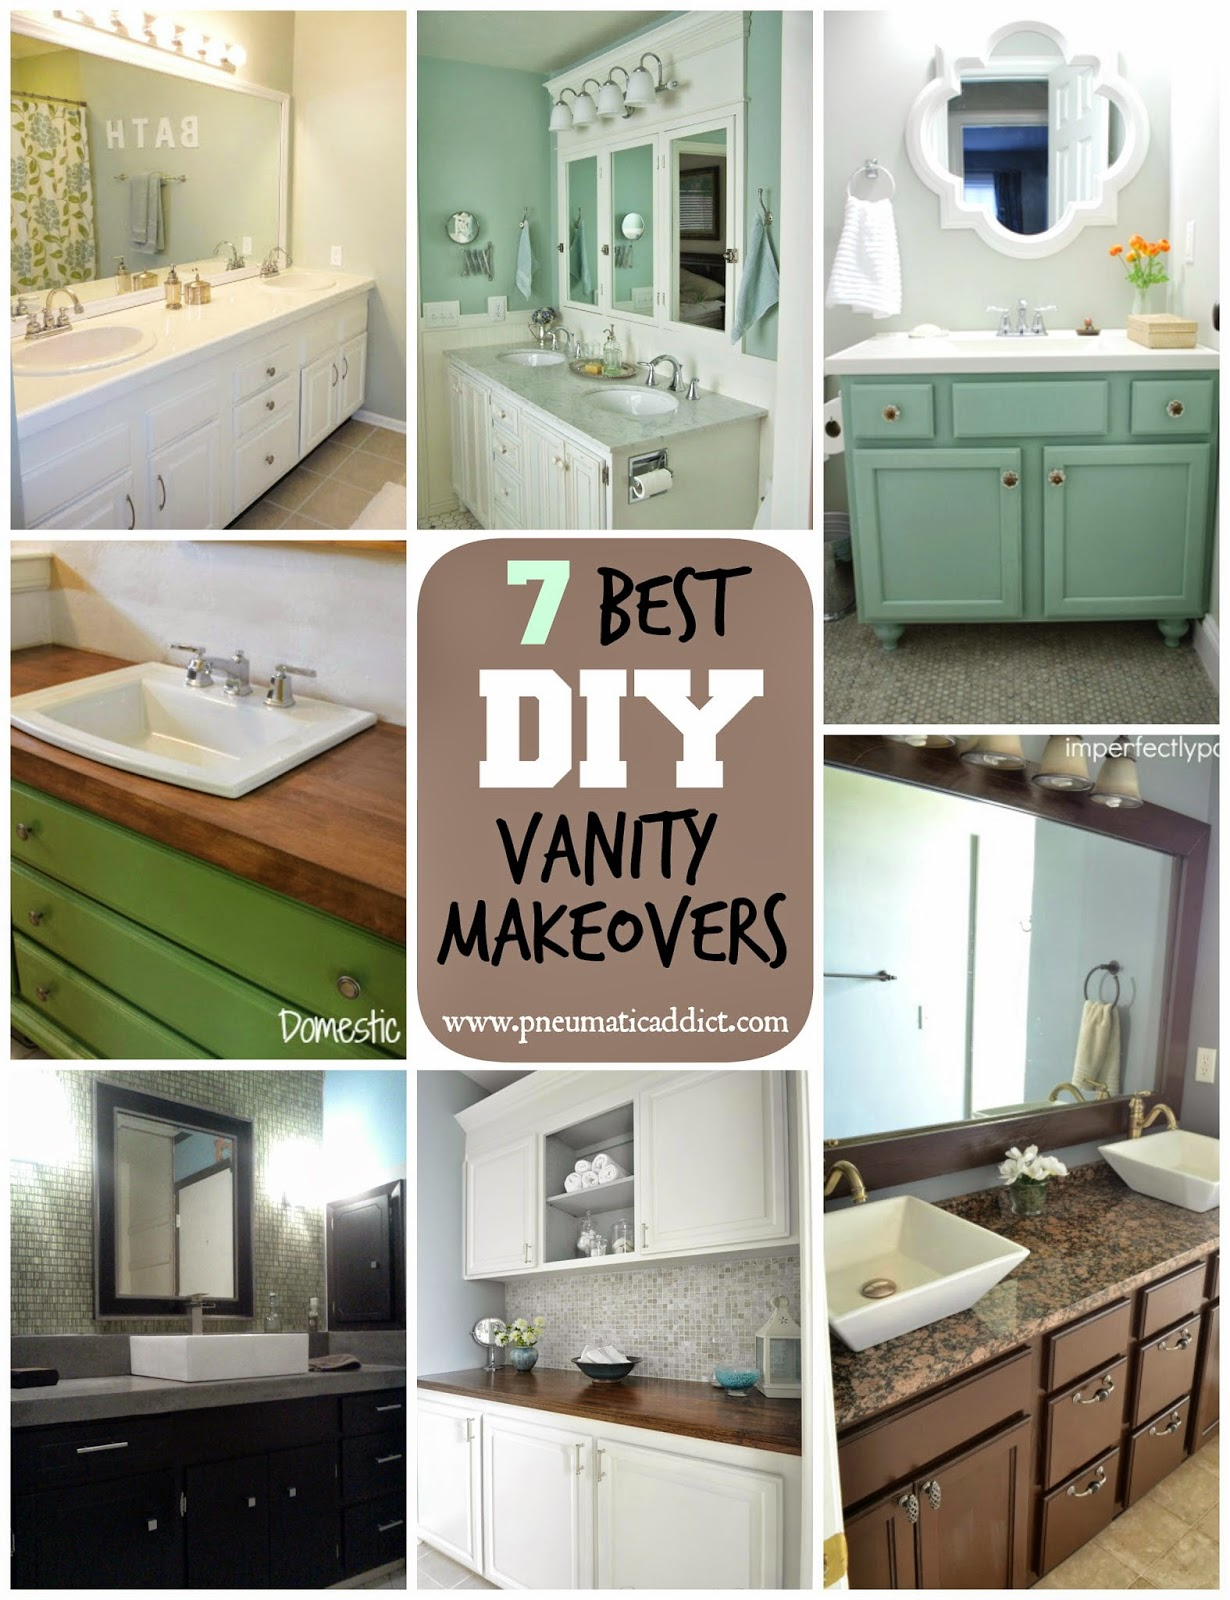 7 Best DIY Bathroom Vanity Makeovers | Pneumatic Addict Diy Home Remodeling Addict on diy home gardening, diy ice dam removal, diy home drywall, diy pest control, diy home repair, diy home media rooms, diy home crafts, diy home decor, diy home foundations, diy home photography, diy garden, diy home building, diy home plumbing, diy home business, diy kitchen backsplash, diy home designing, diy home equipment, diy home windows, diy home entertainment, diy home handyman,